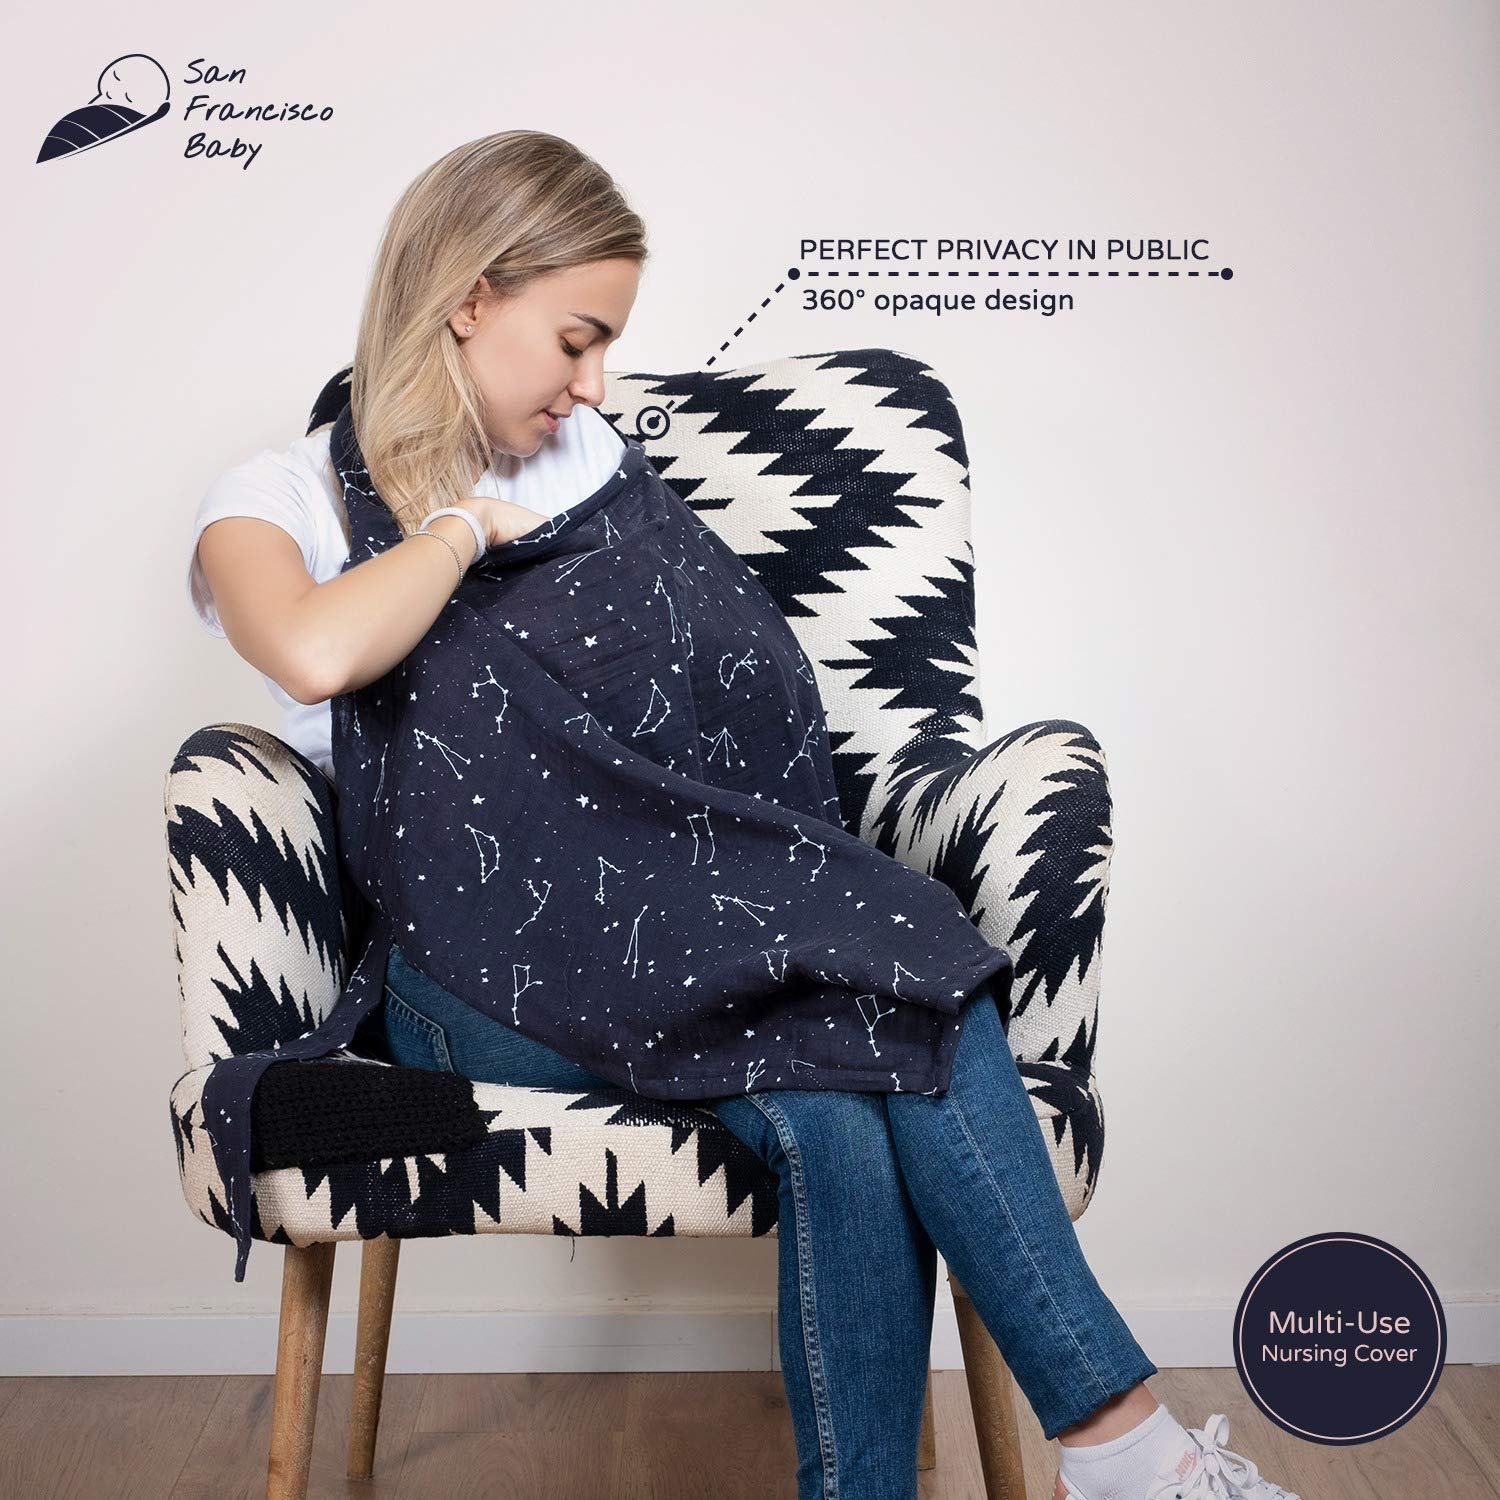 Cotton Muslin Nursing Cover - Large Breastfeeding Cover with Built-in Burp Cloth & Pocket - Soft, Breathable, Chemical-Free, 360° Coverage, Multiuse Nursing Cover by San Francisco Baby - Black by San Francisco Baby